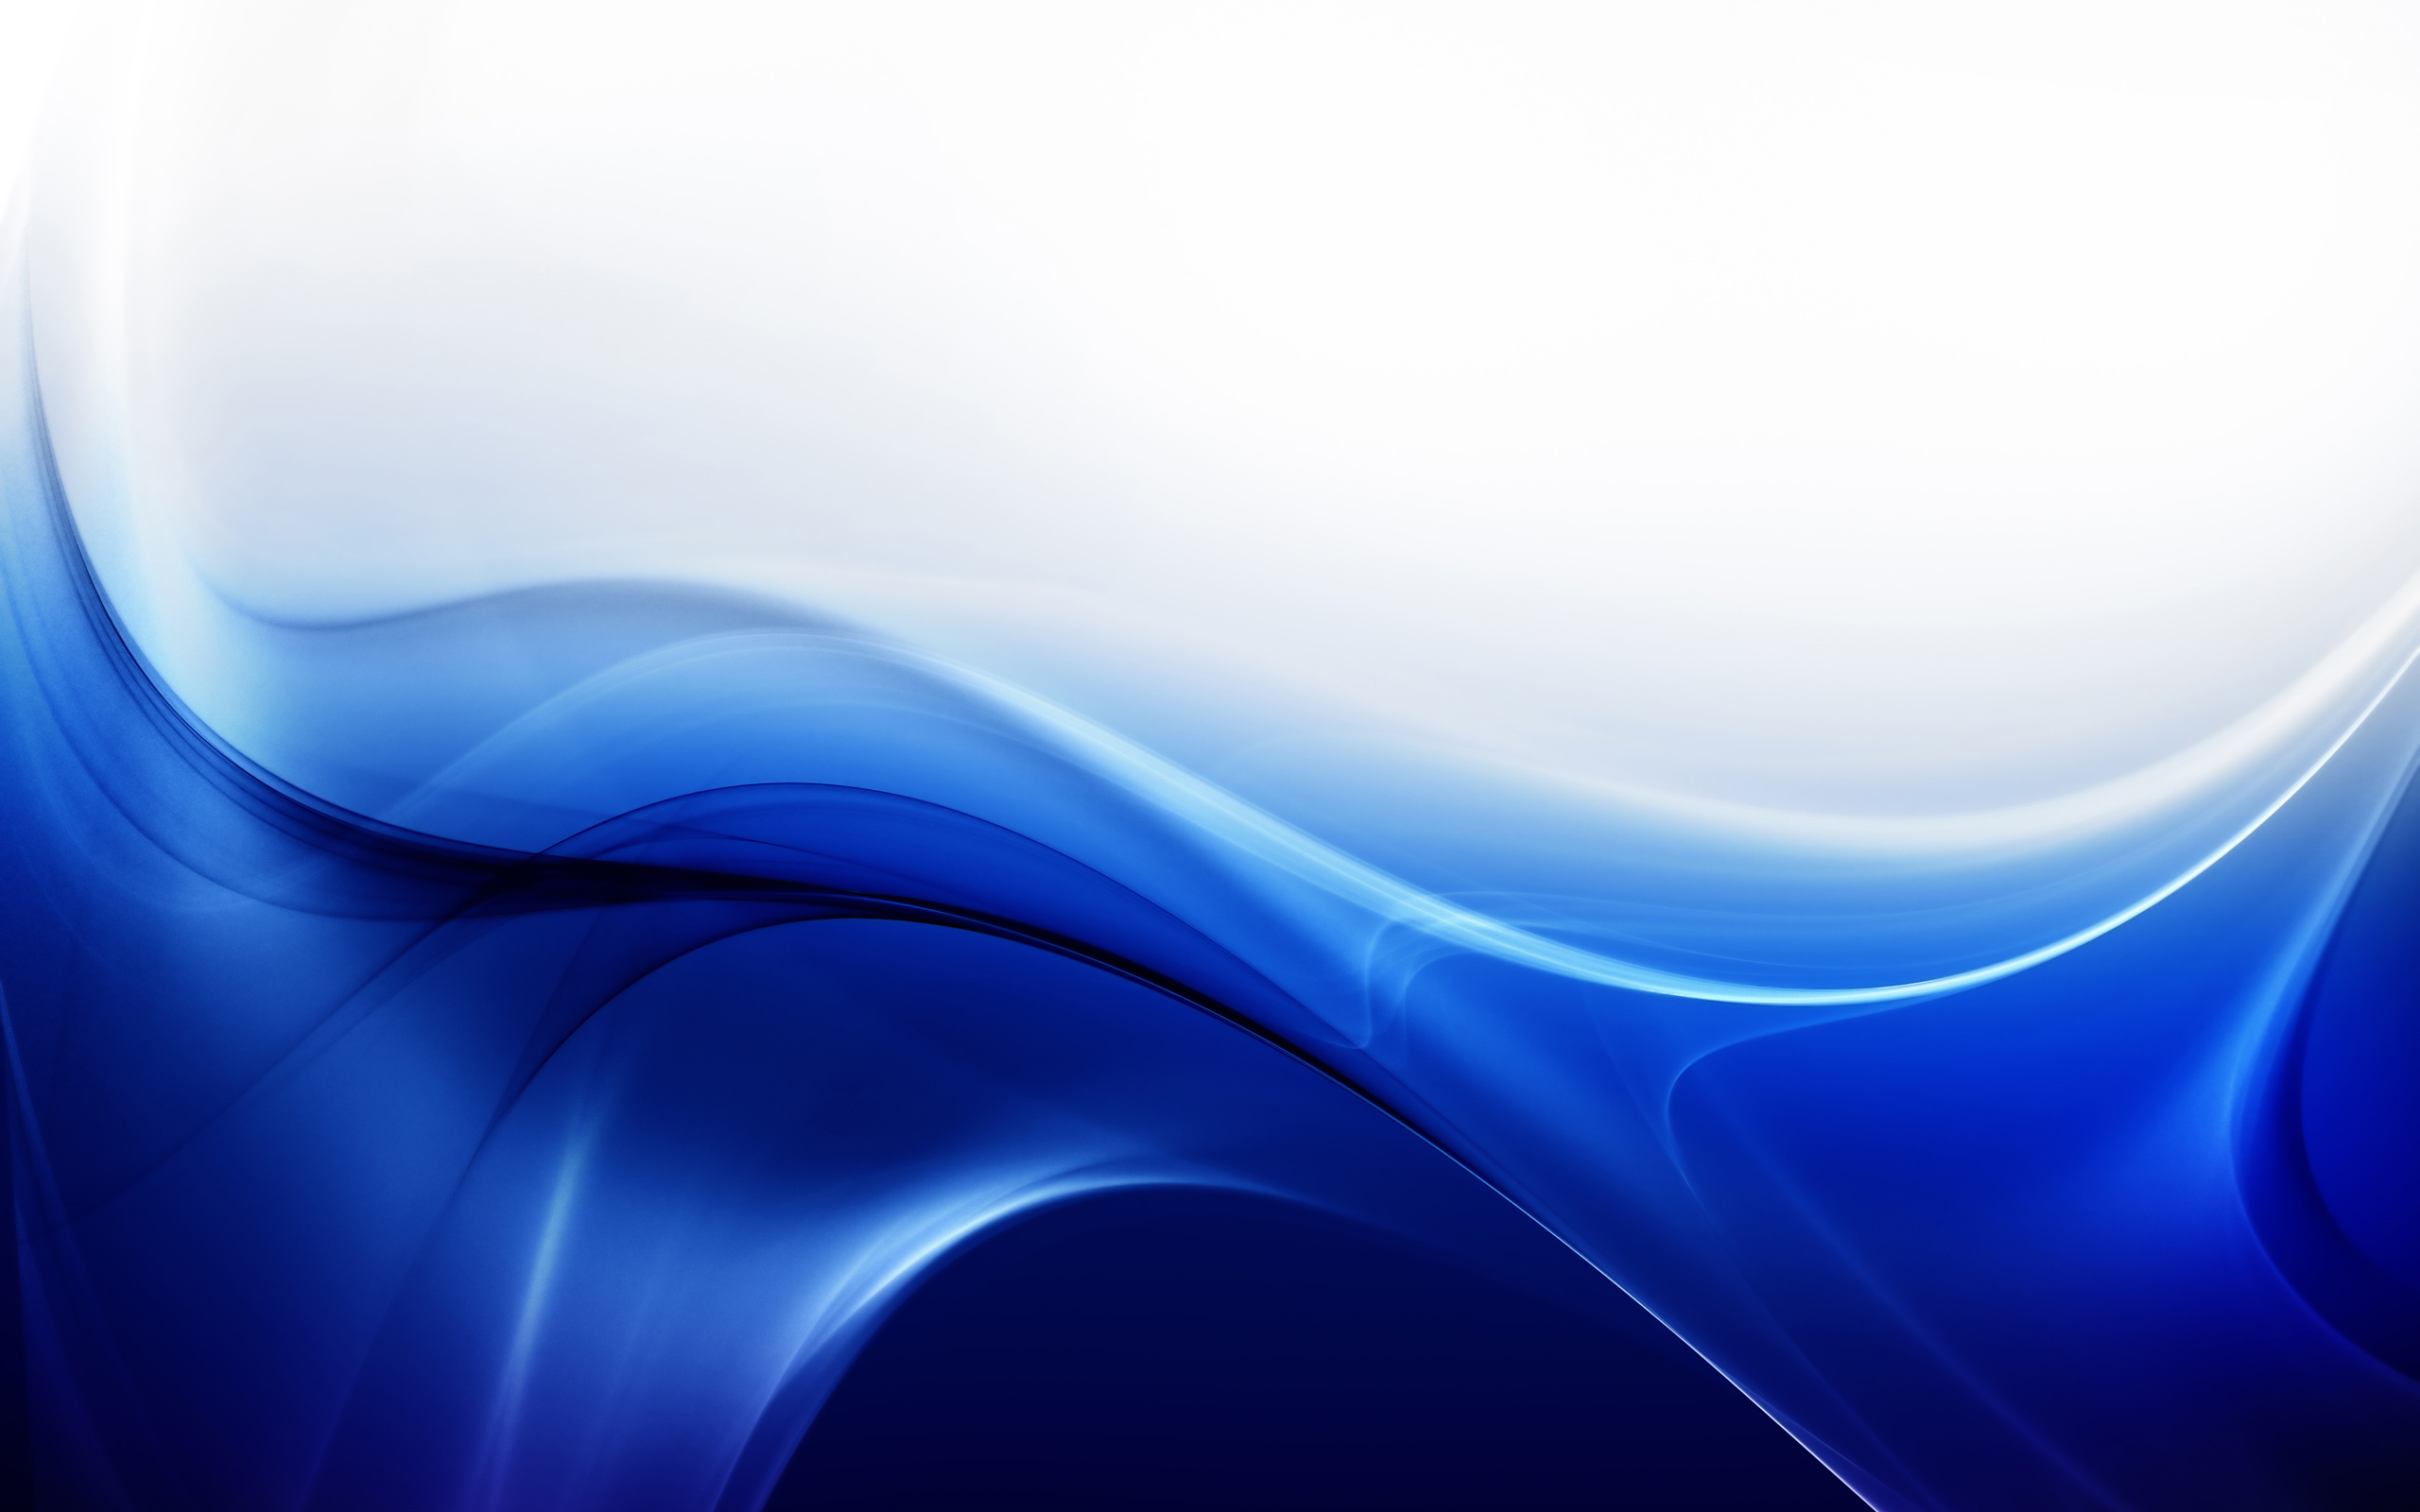 abstract blue wallpaper 45176 2560x1600 px ~ hdwallsource